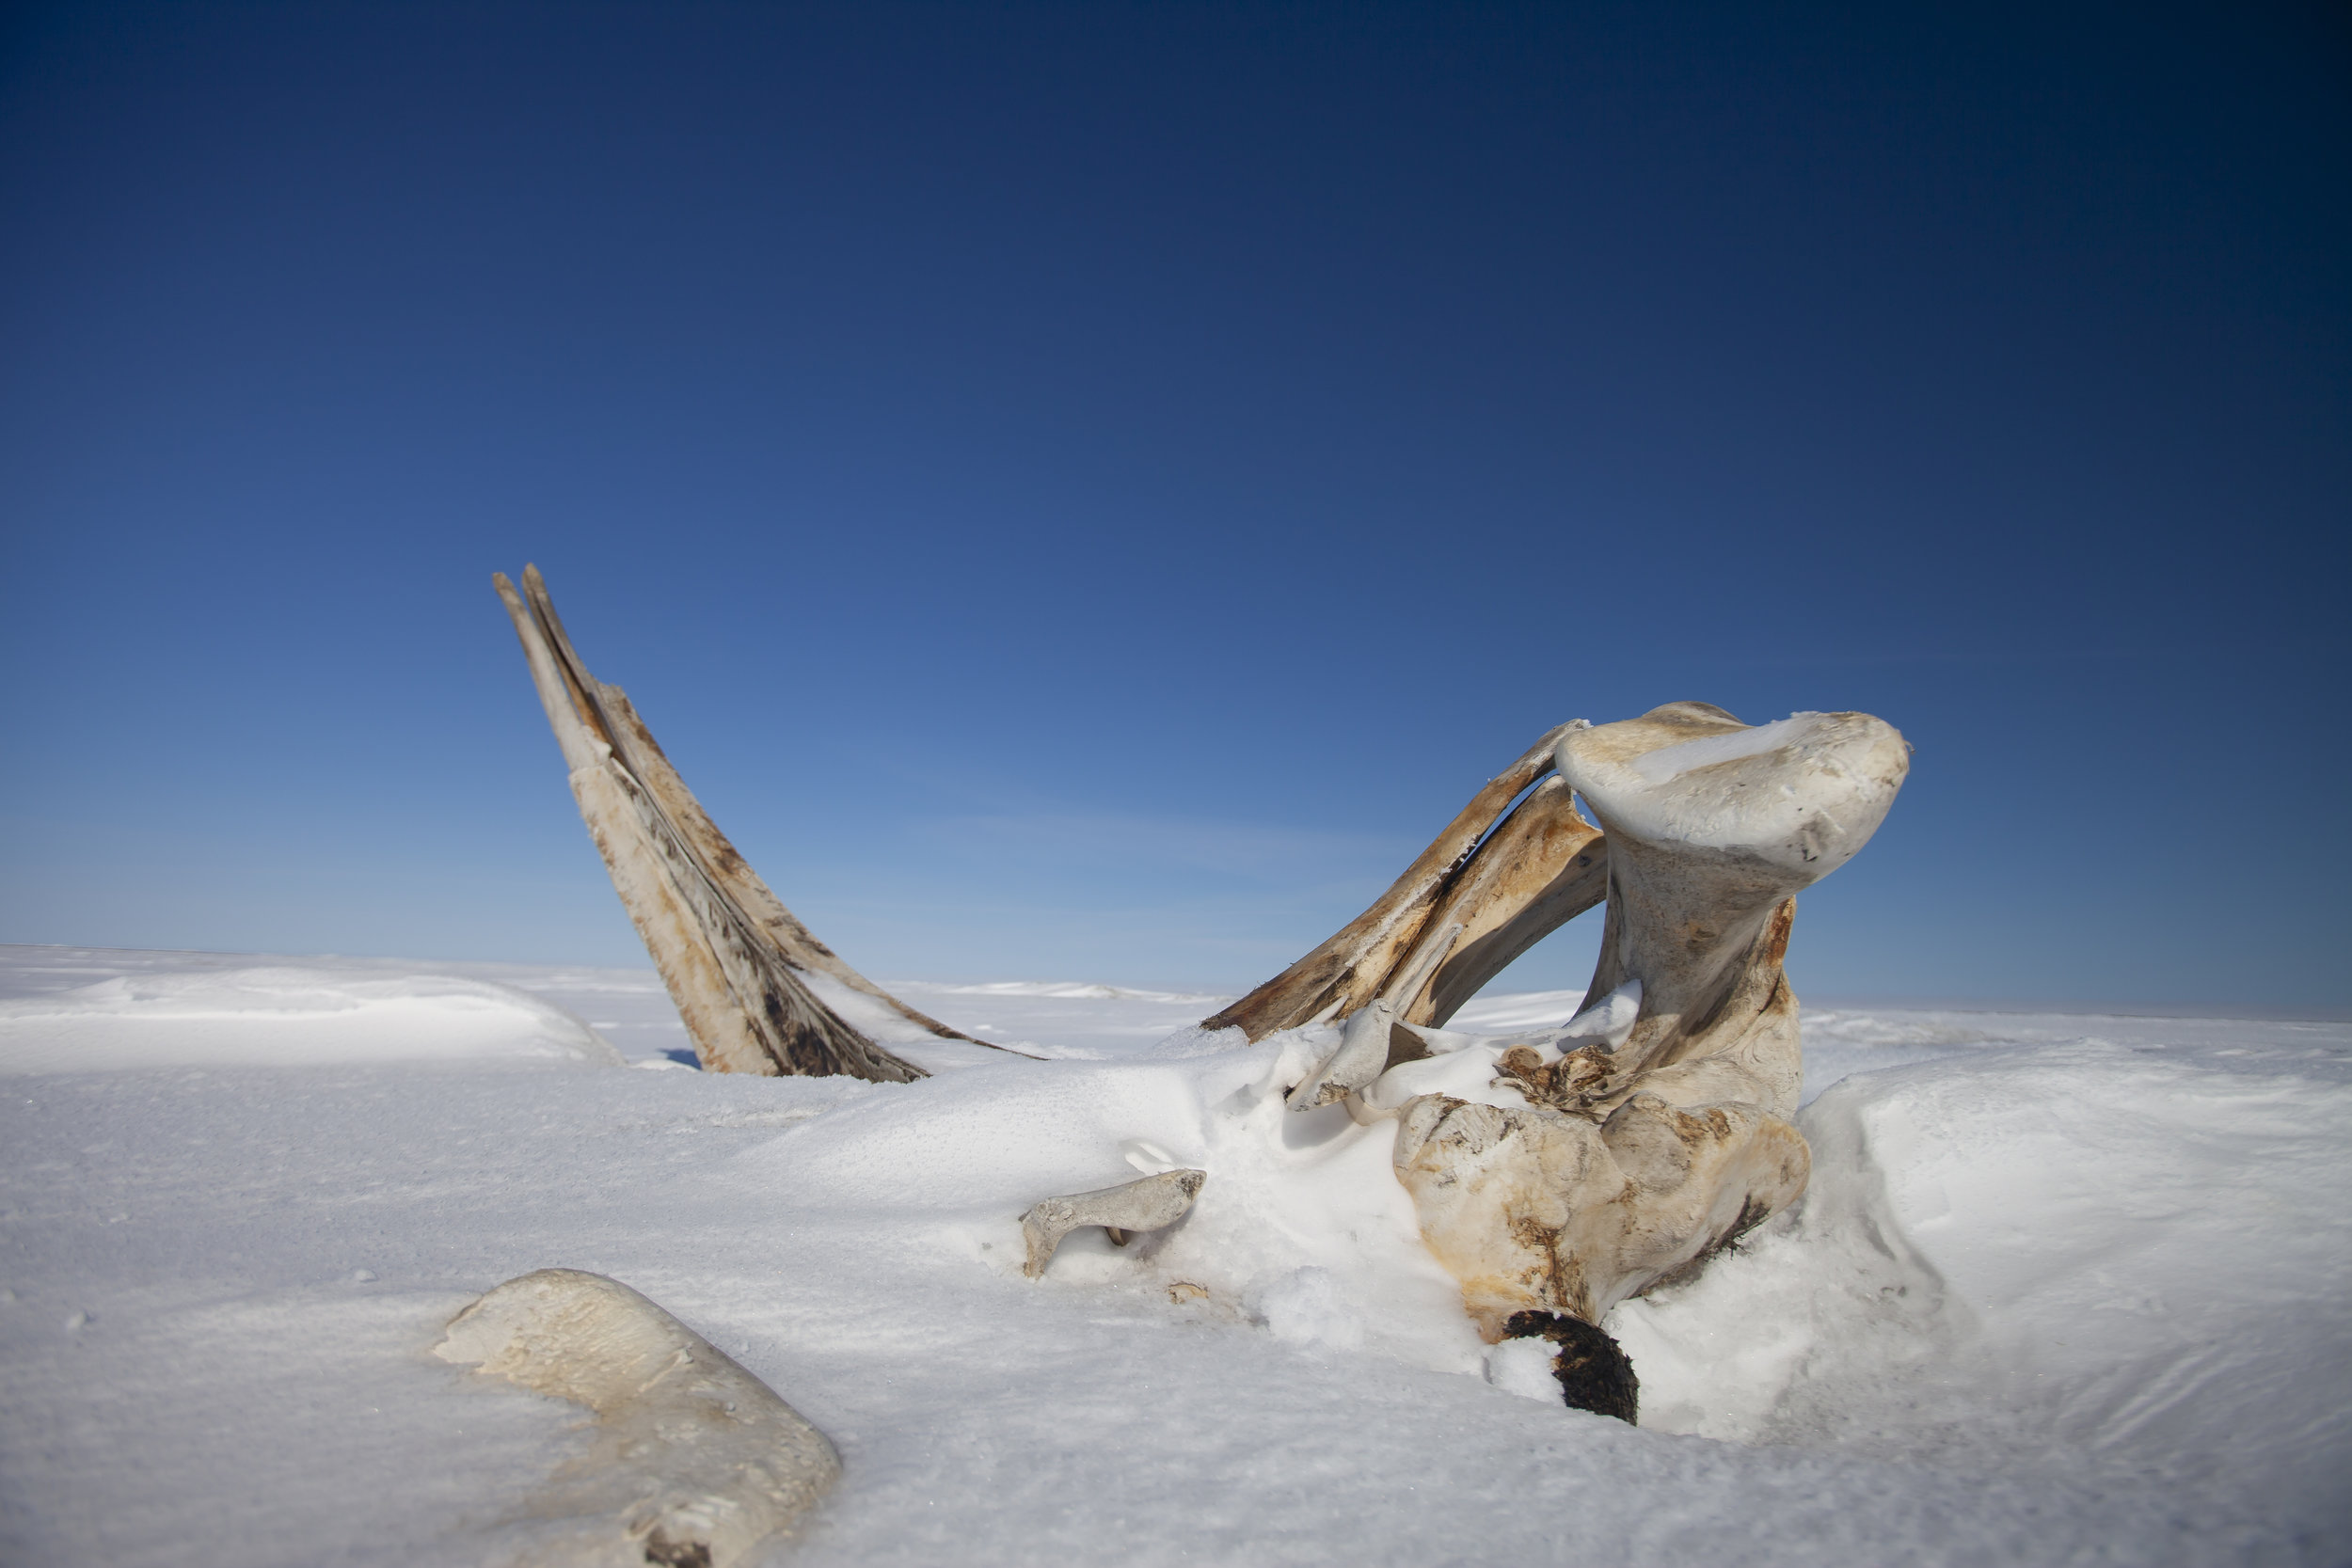 Jaw bones from a Bowhead Whale on the coast of the Beaufort Sea.